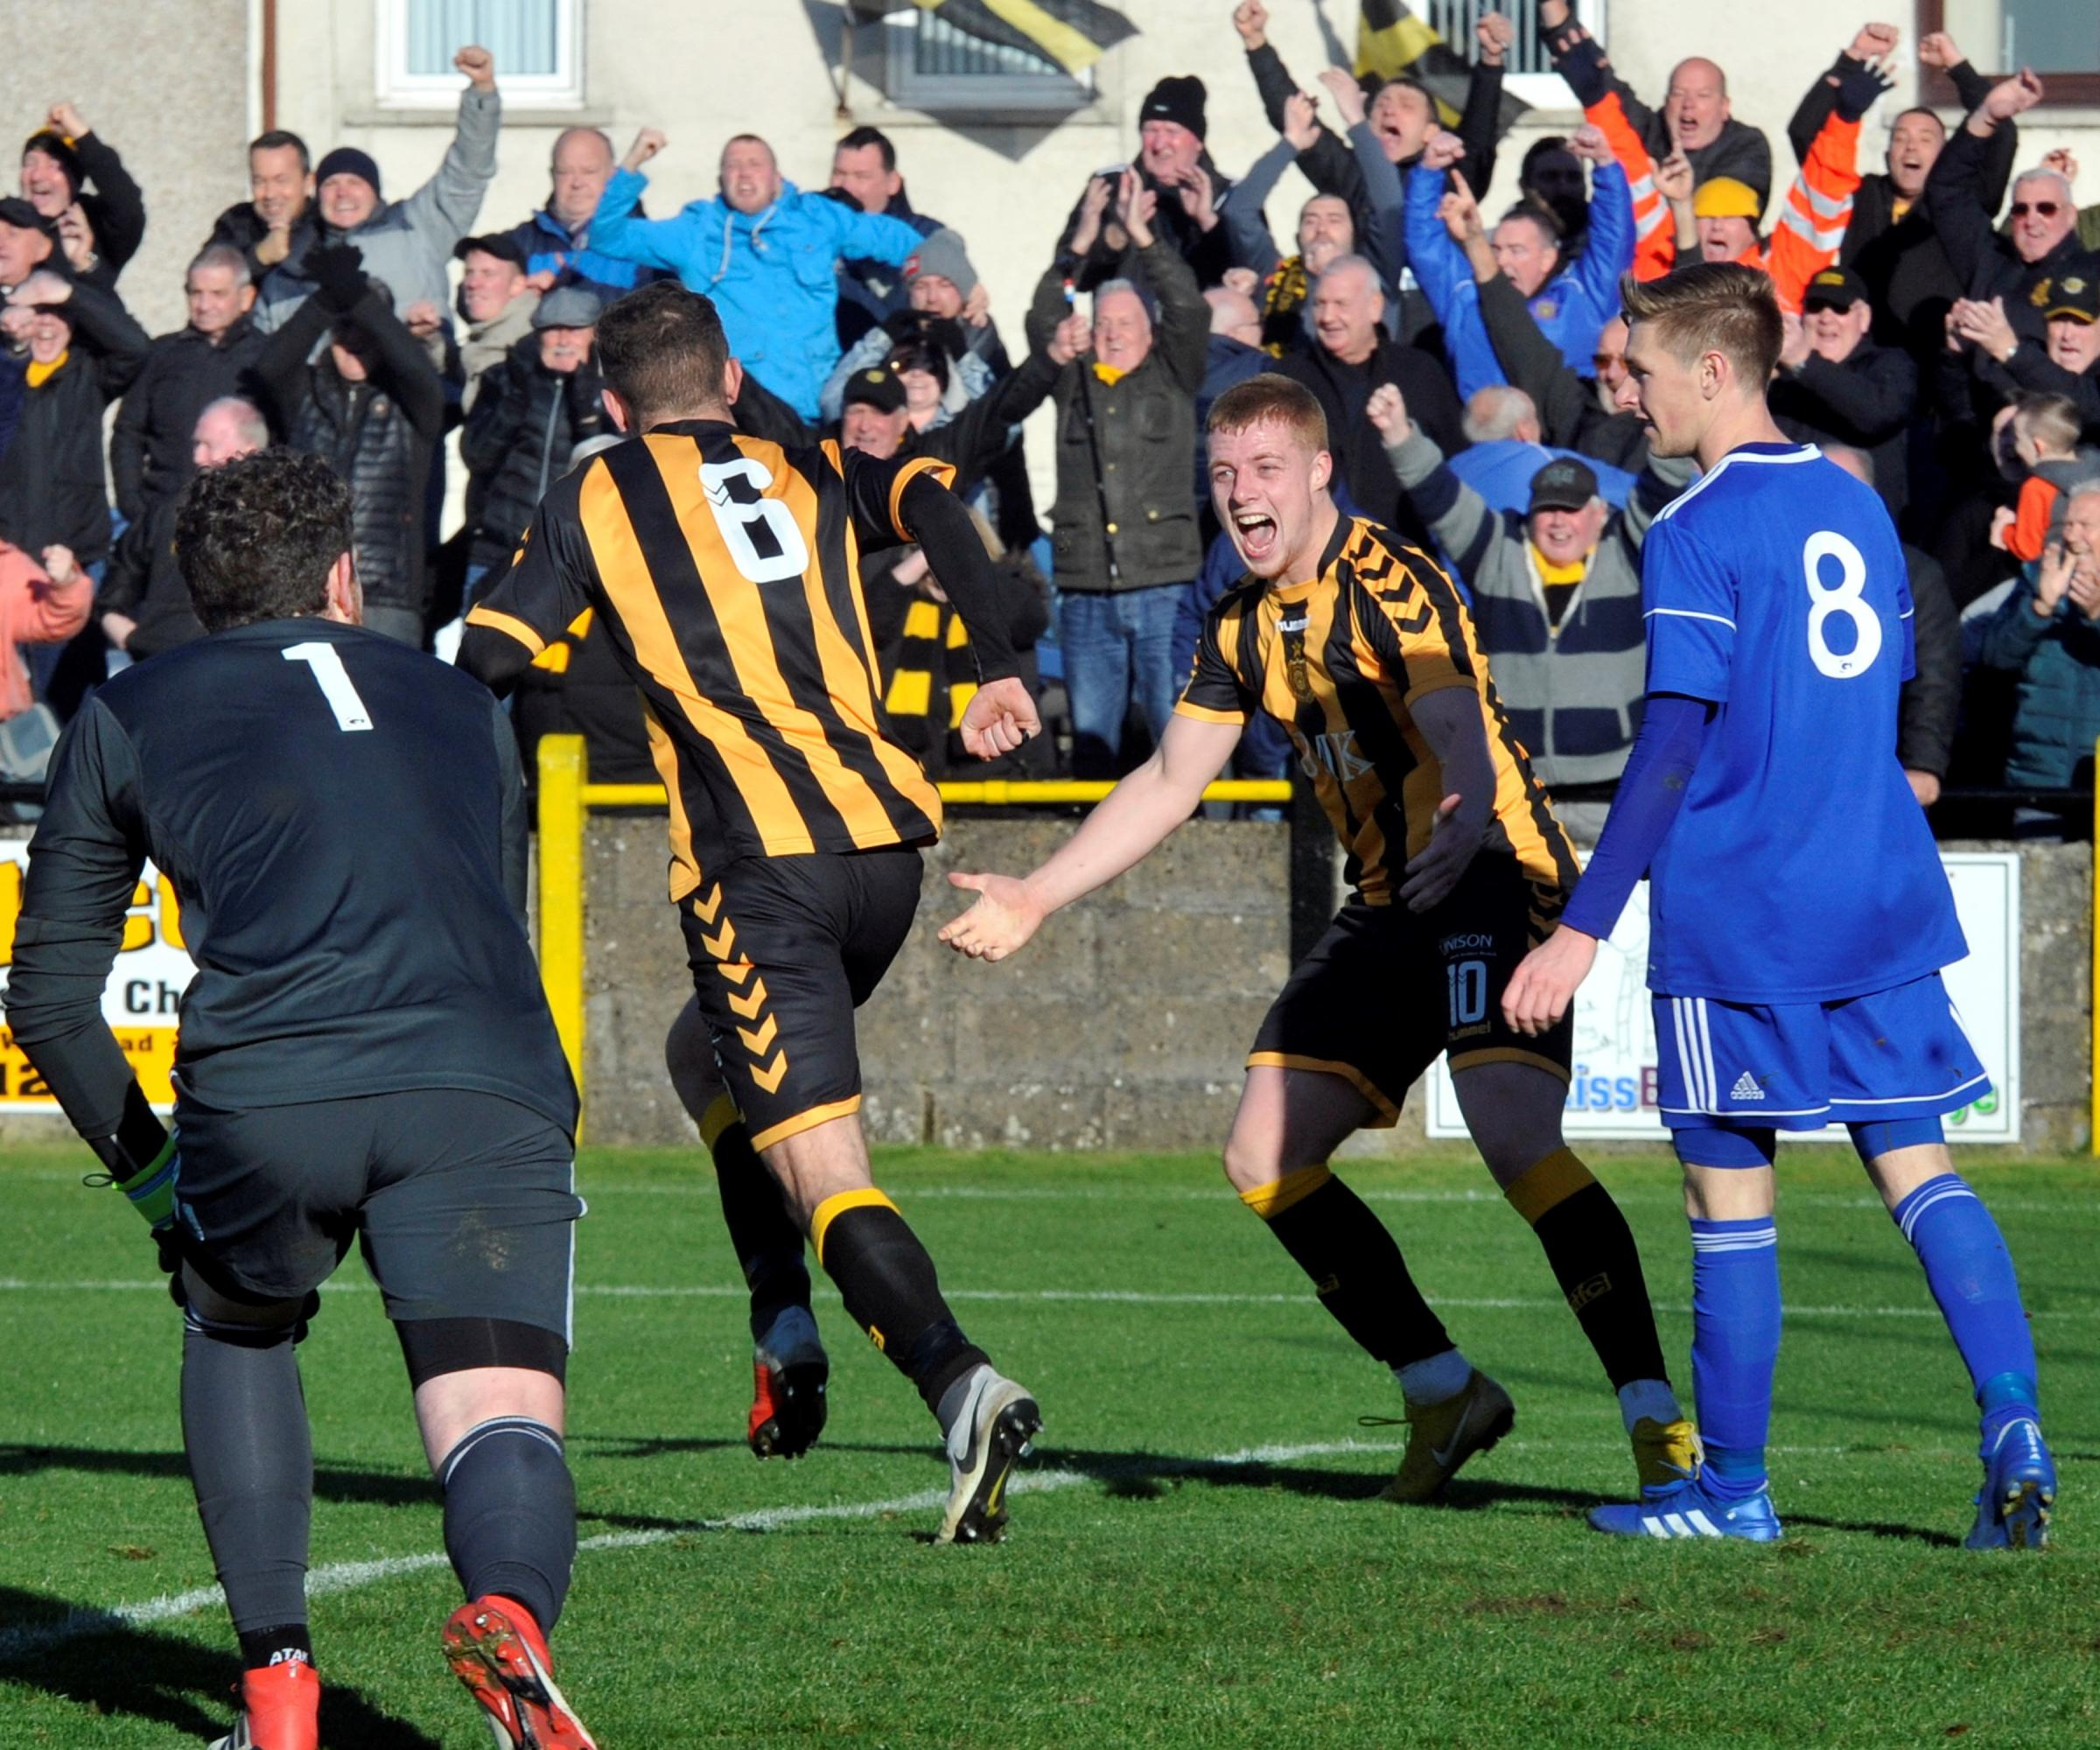 OPENING GOAL: Talbot's Stephen Wilson celebrates with Calvin Kemp after scoring against Cove Rangers